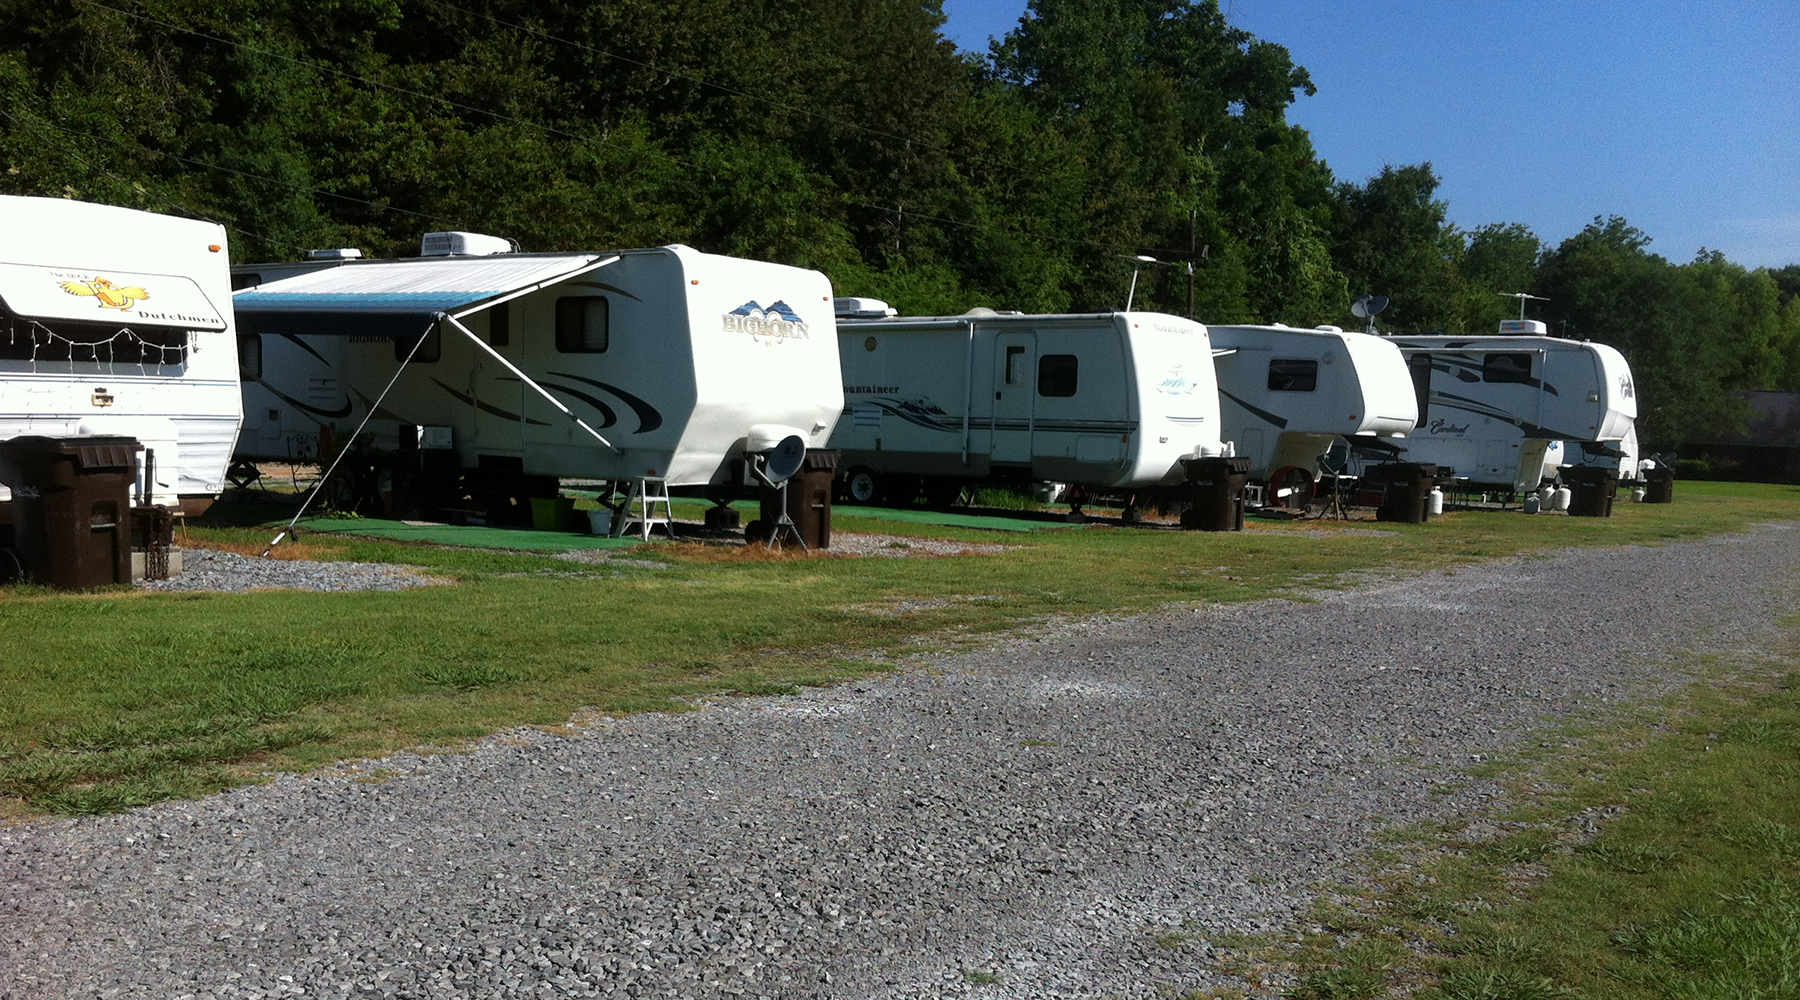 B and B RV Park